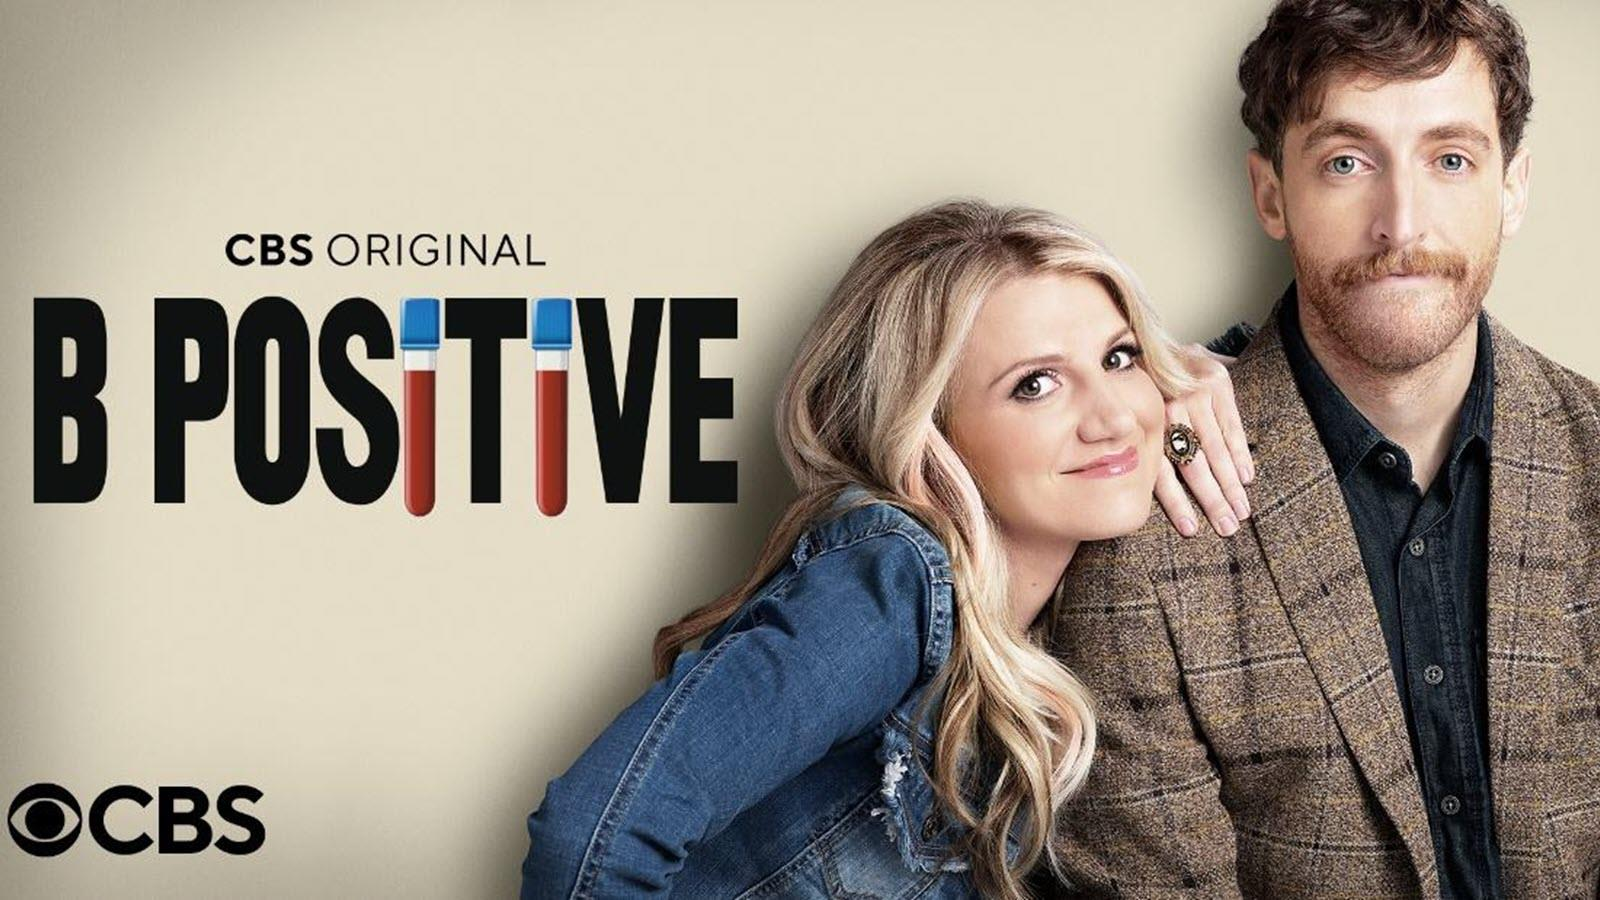 Photo of actors in the CBS show B Positive about organ donation